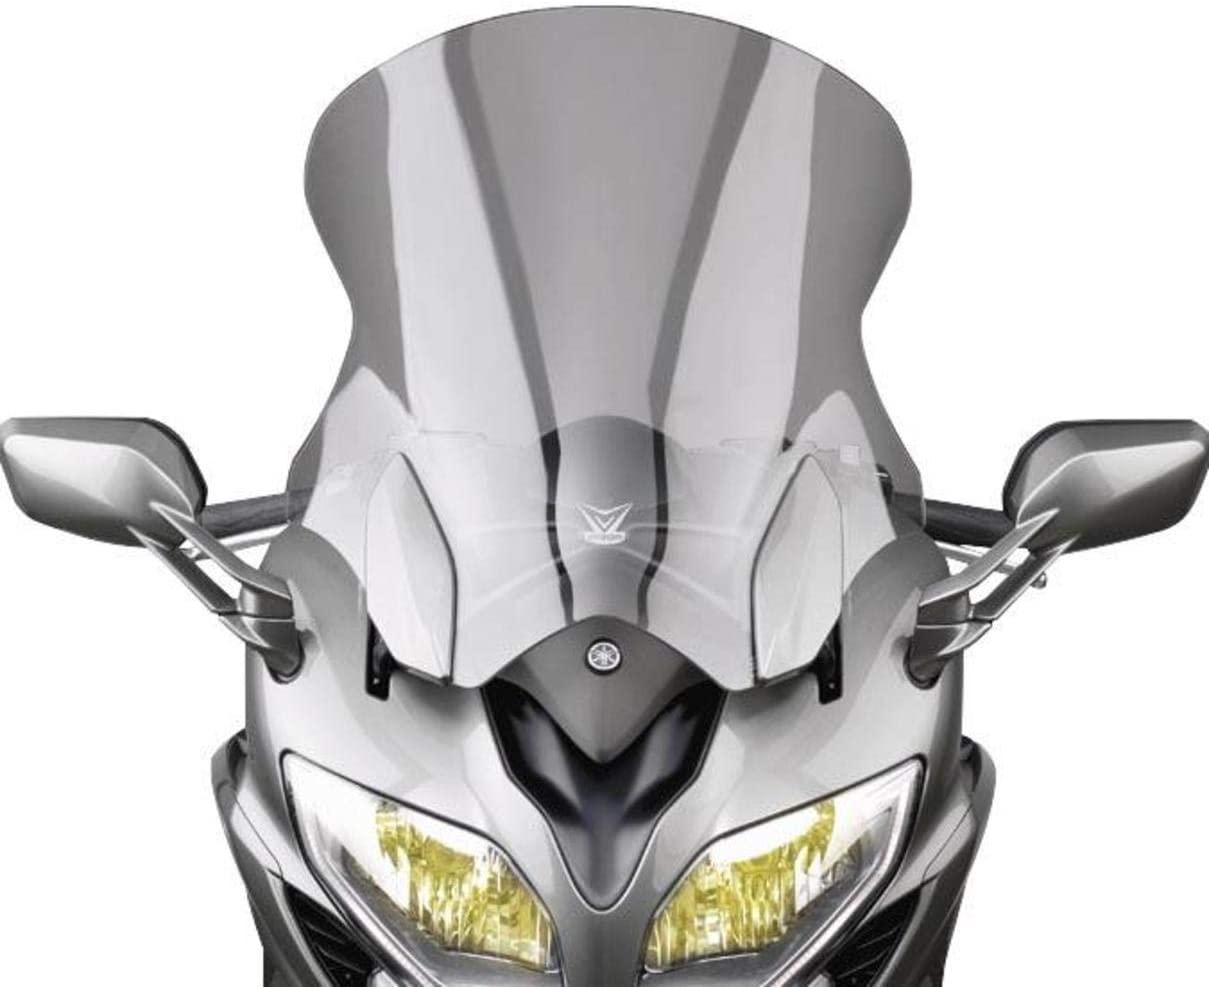 One Size Light Tint National Cycle VStream Windscreen for 2013-2014 Yamaha FJR1300